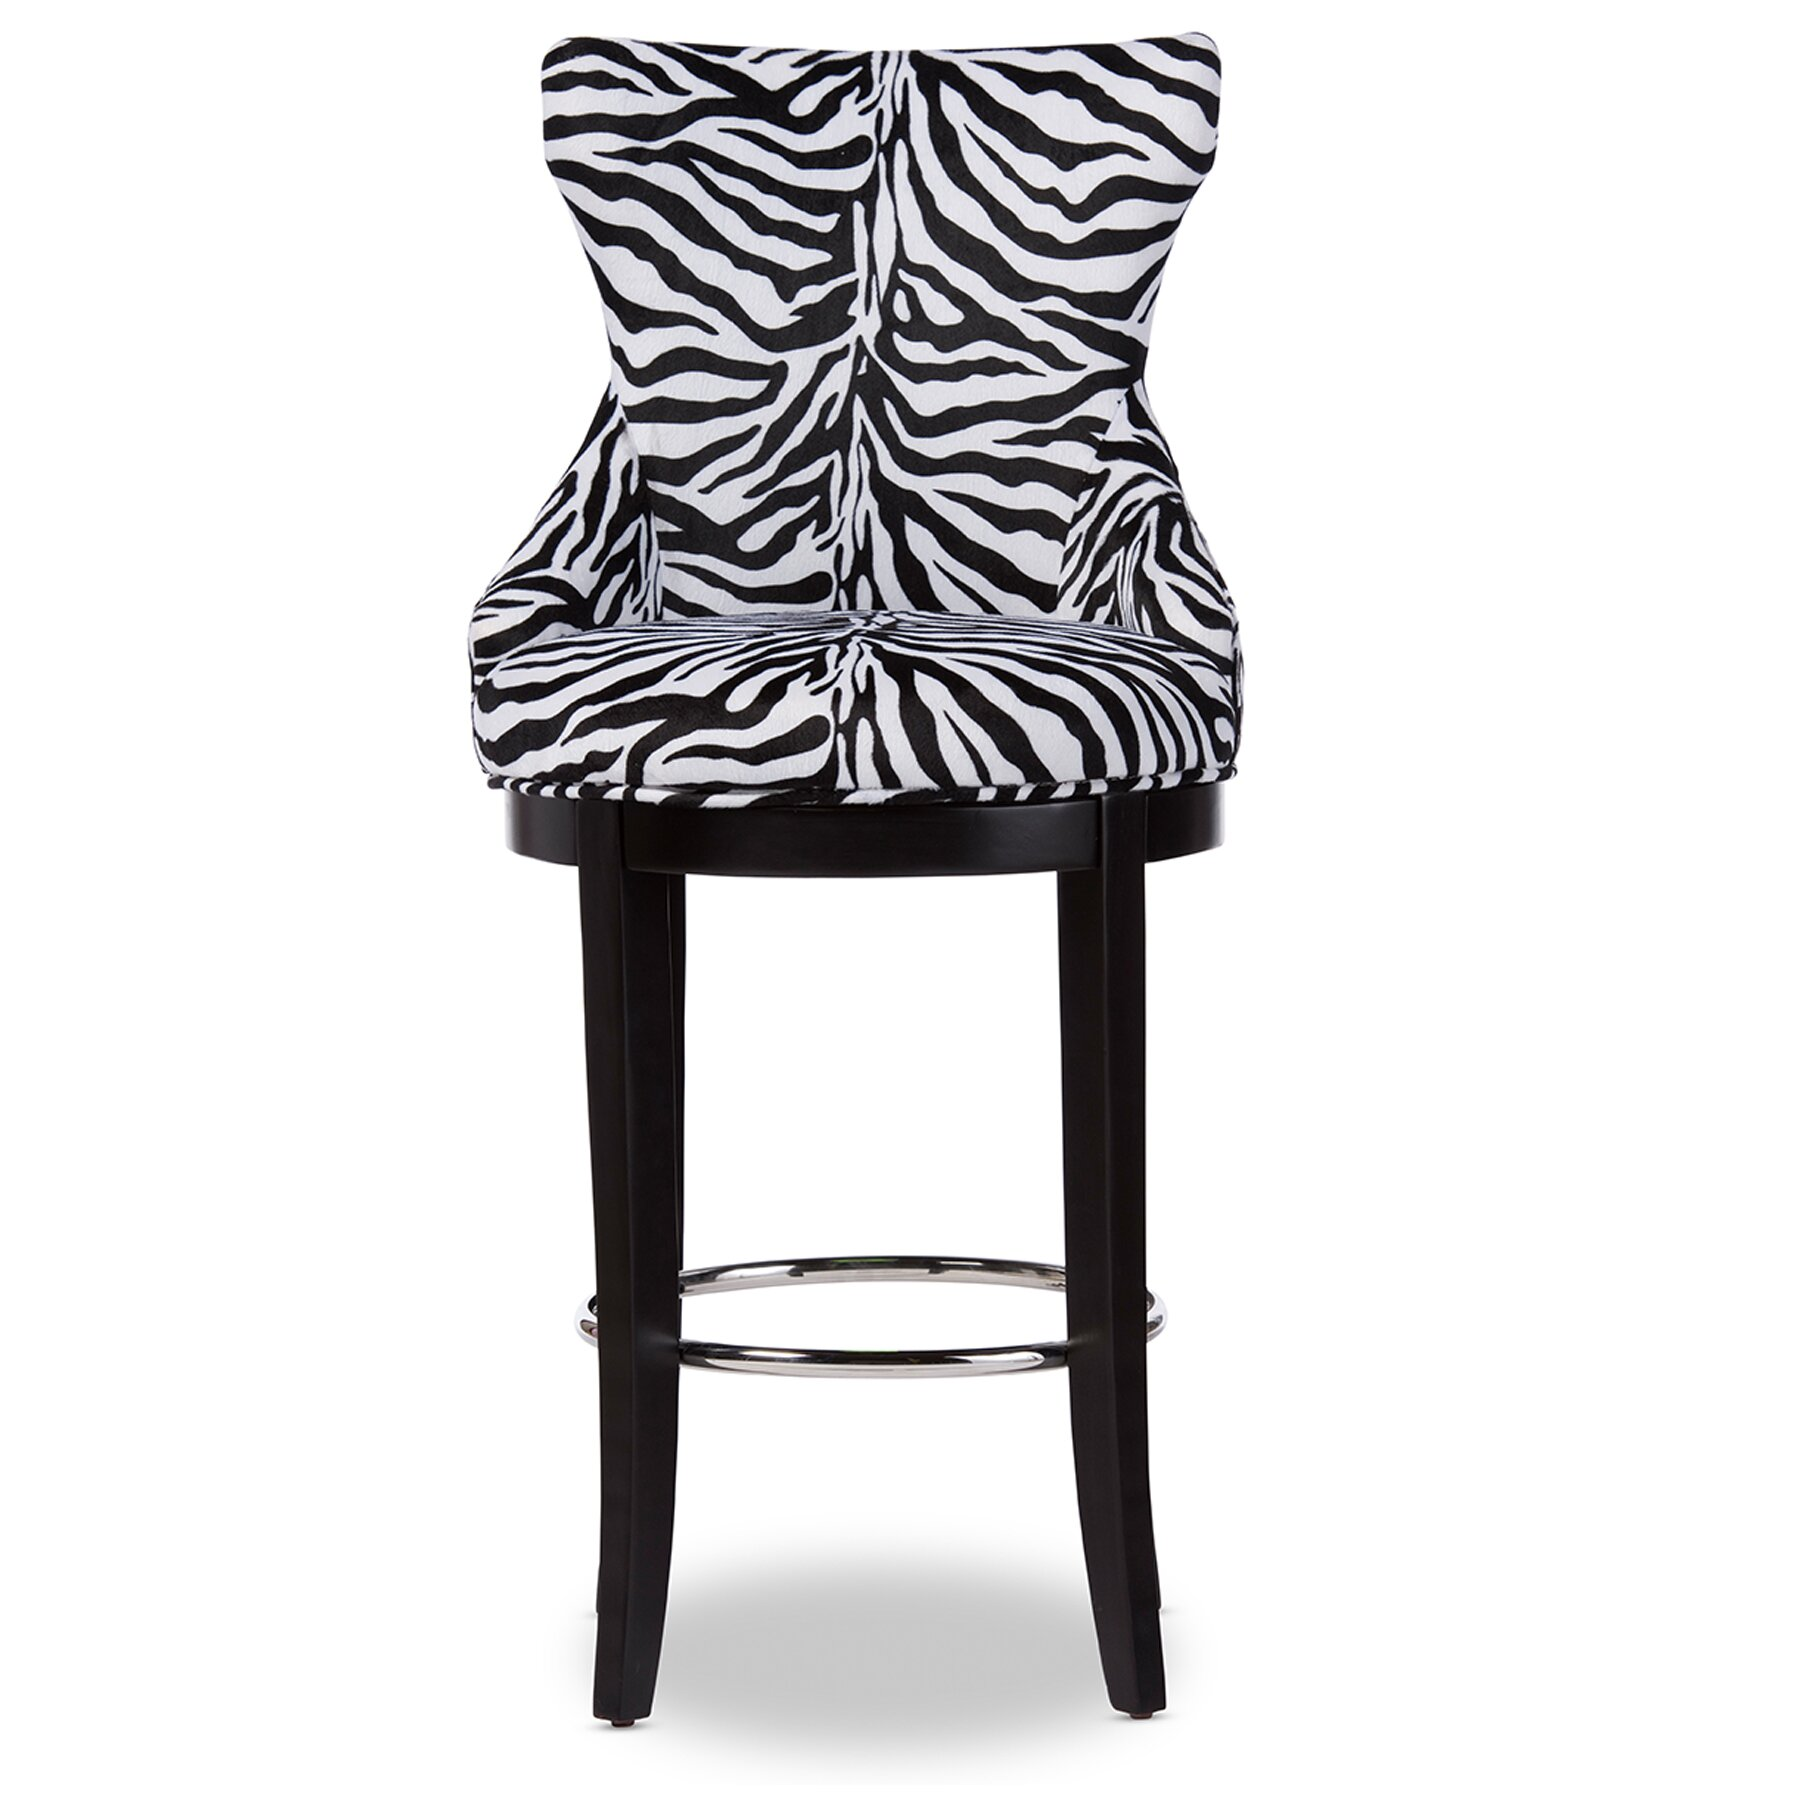 Wholesale Interiors Baxton Studio 2964quot Bar Stool  : Baxton Studio Peace Modern and Contemporary Zebra print Patterned Fabric Upholstered Bar Stool with Metal Footrest WS 2075 Zebra from www.wayfair.com size 1800 x 1800 jpeg 195kB